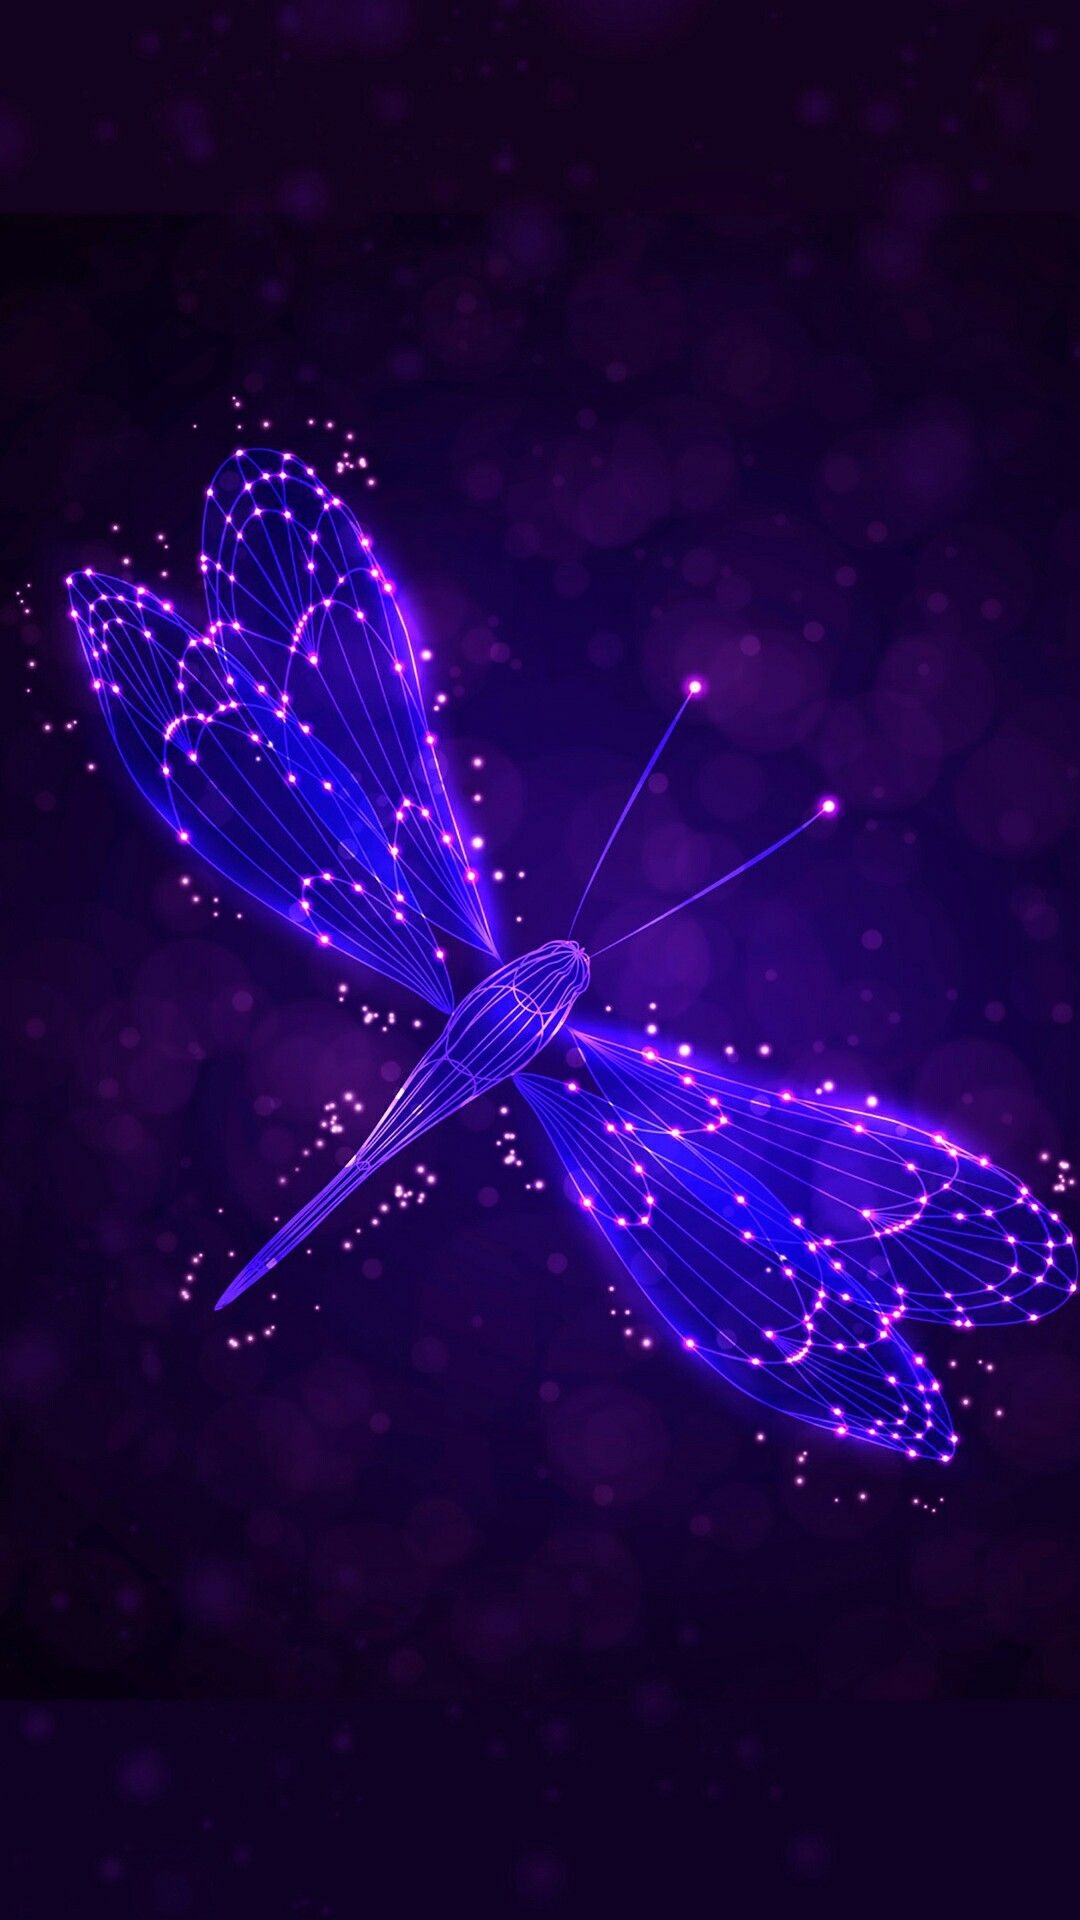 Pin By Ana Beatriz On Dragonflies Butterfly Wallpaper Backgrounds Dragonfly Wallpaper Dragonfly Wall Art